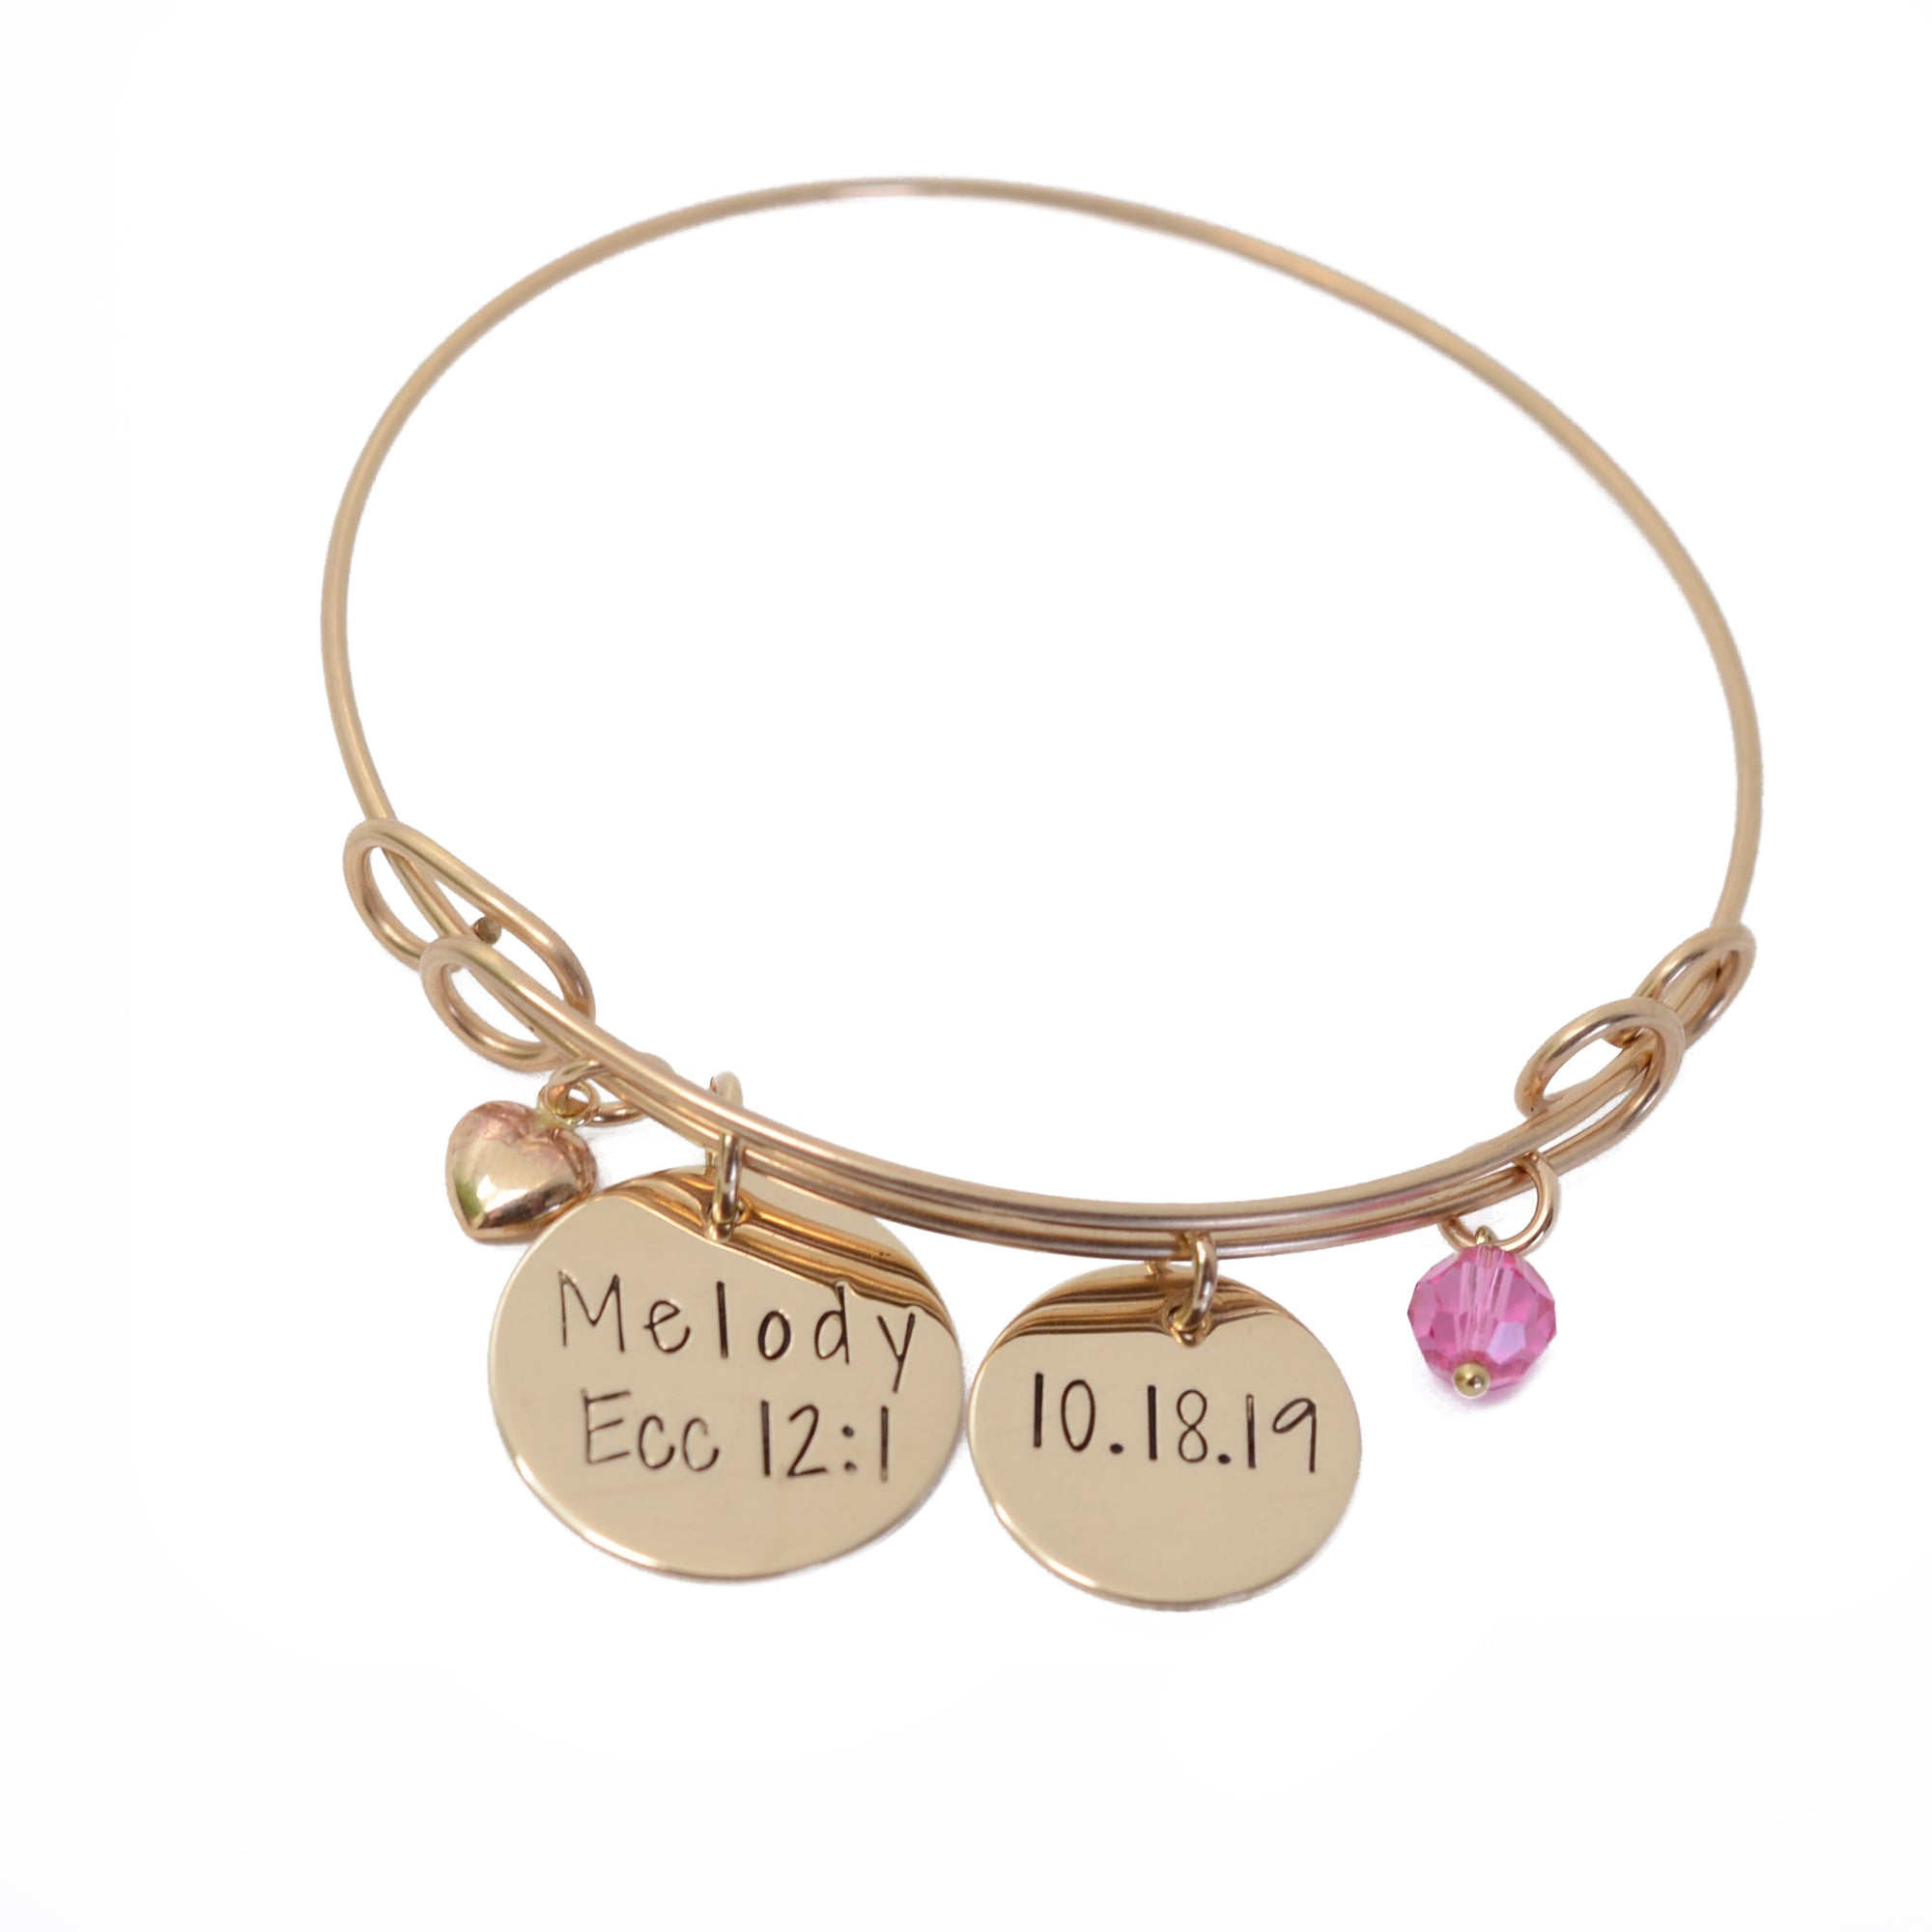 Maid of Honor 14K Gold Filled Bangle - Love It Personalized